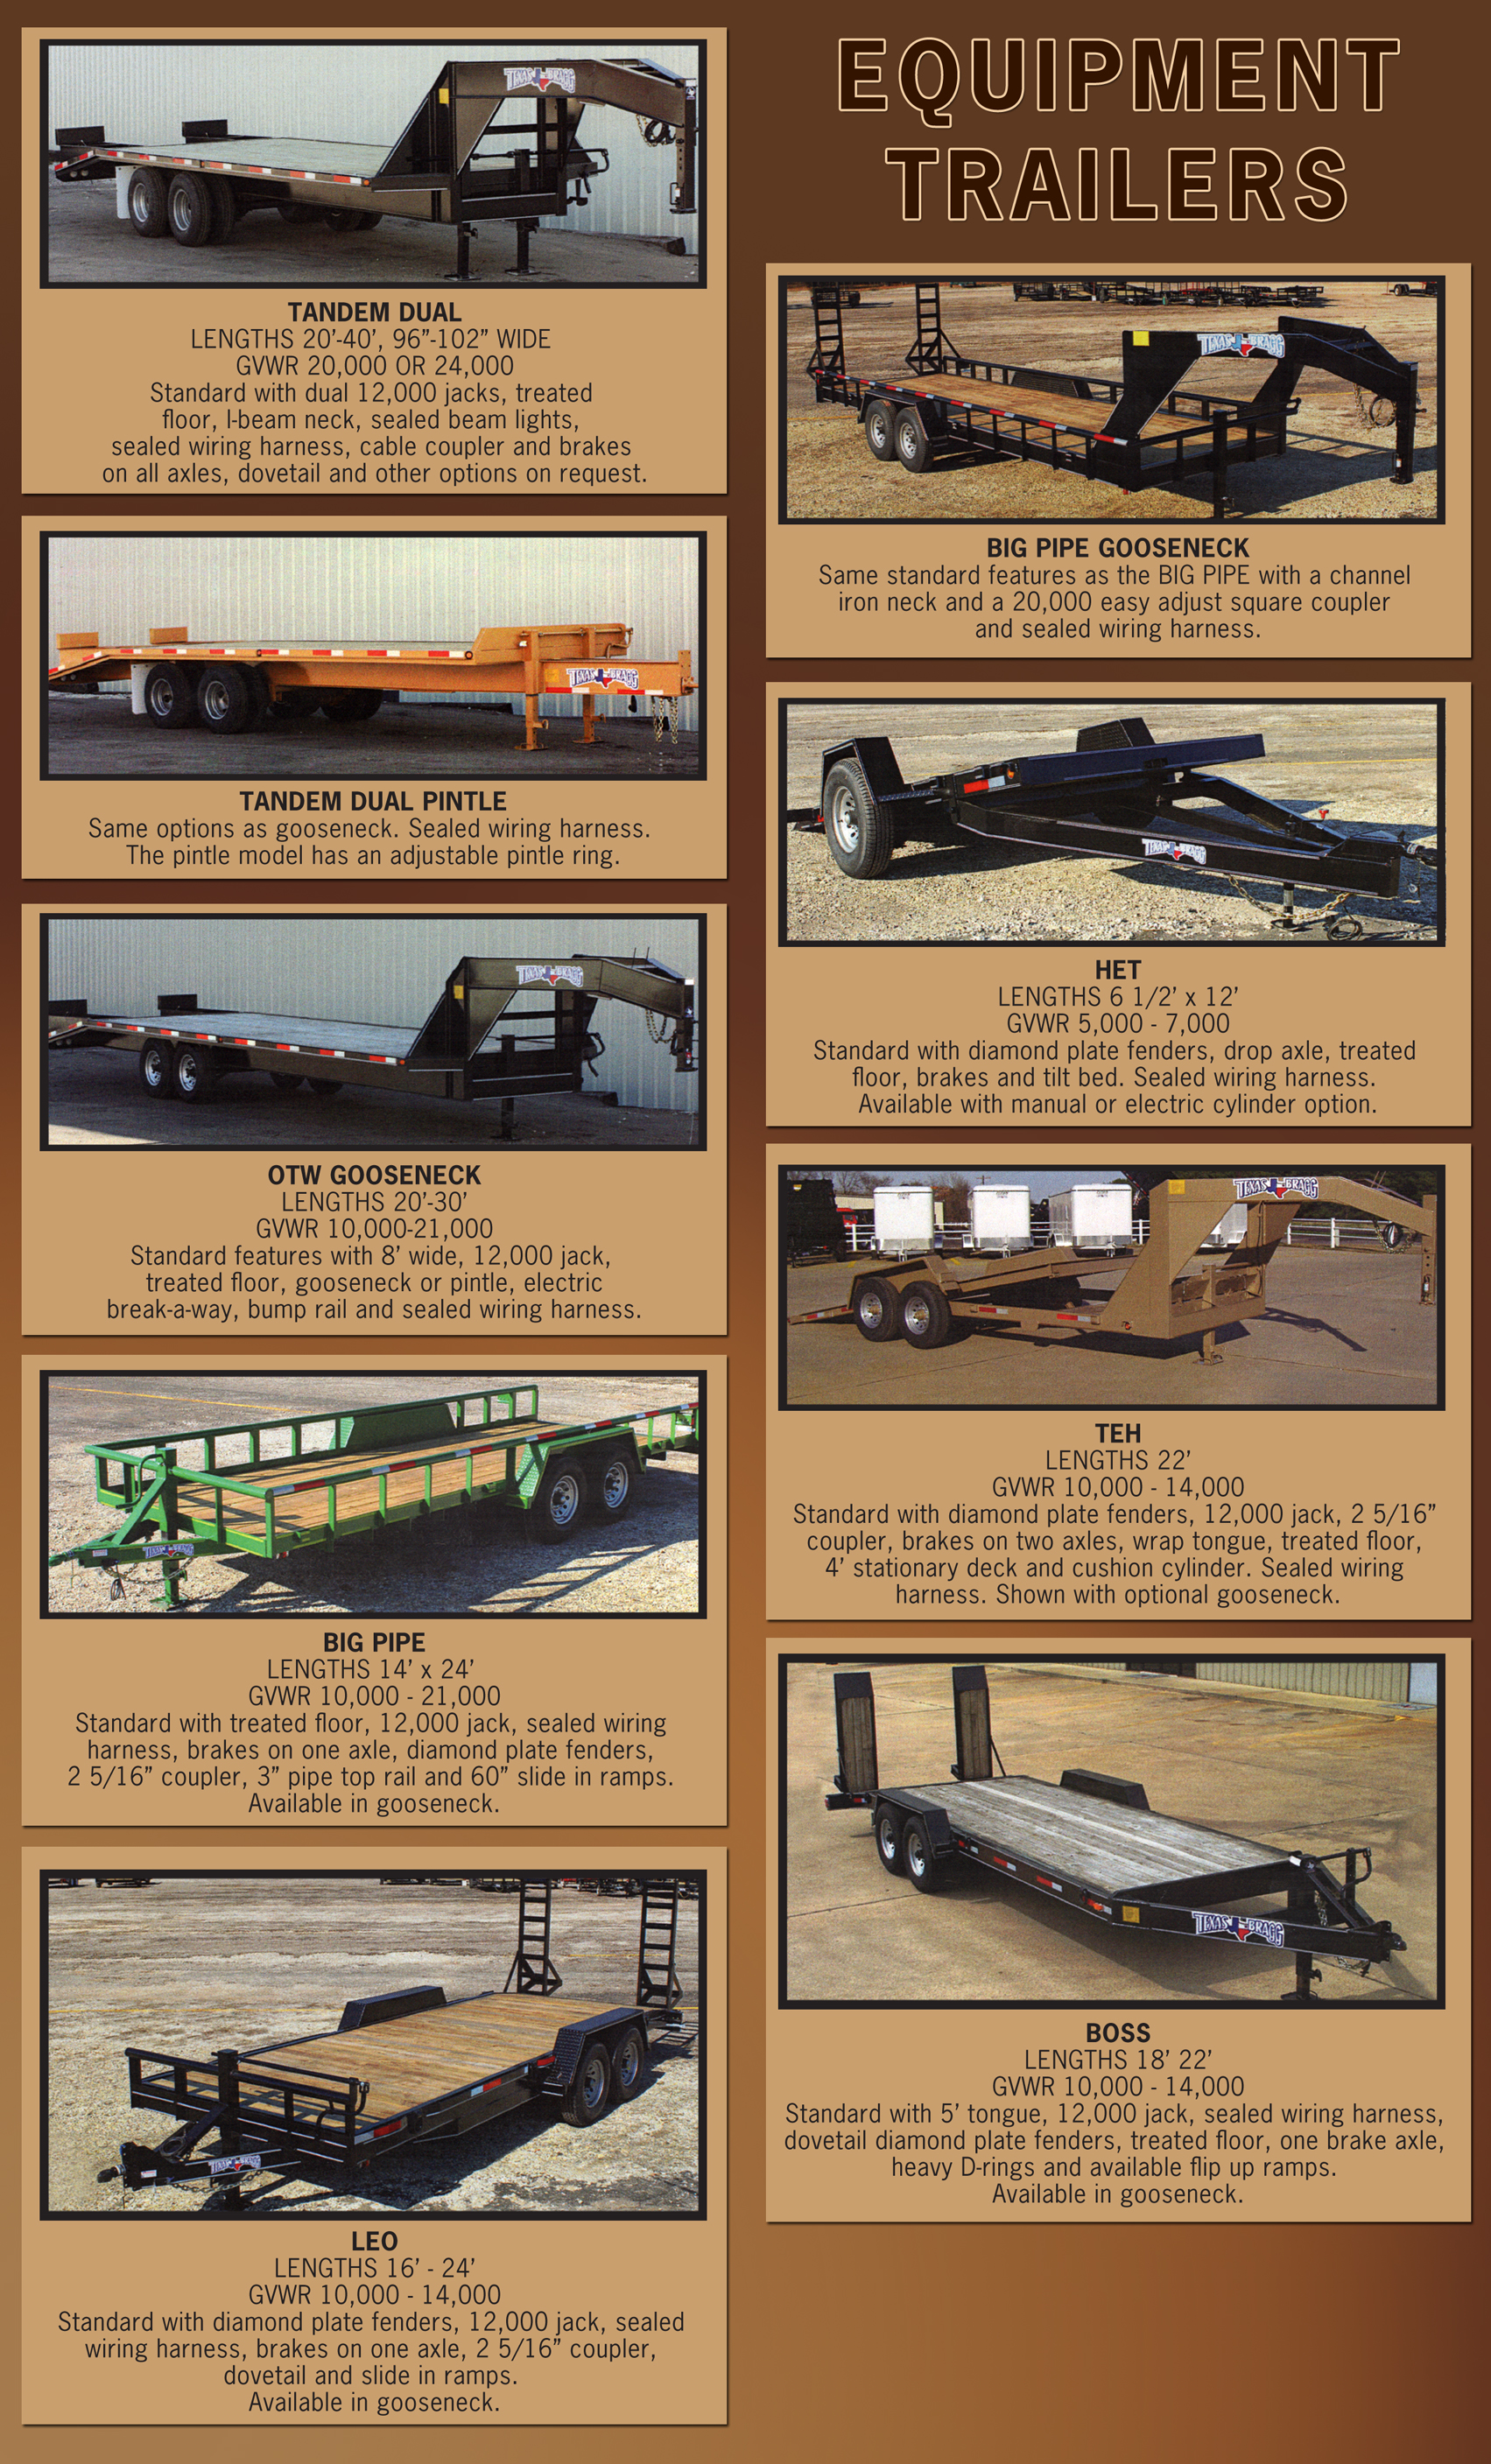 equipment trailers2.jpg